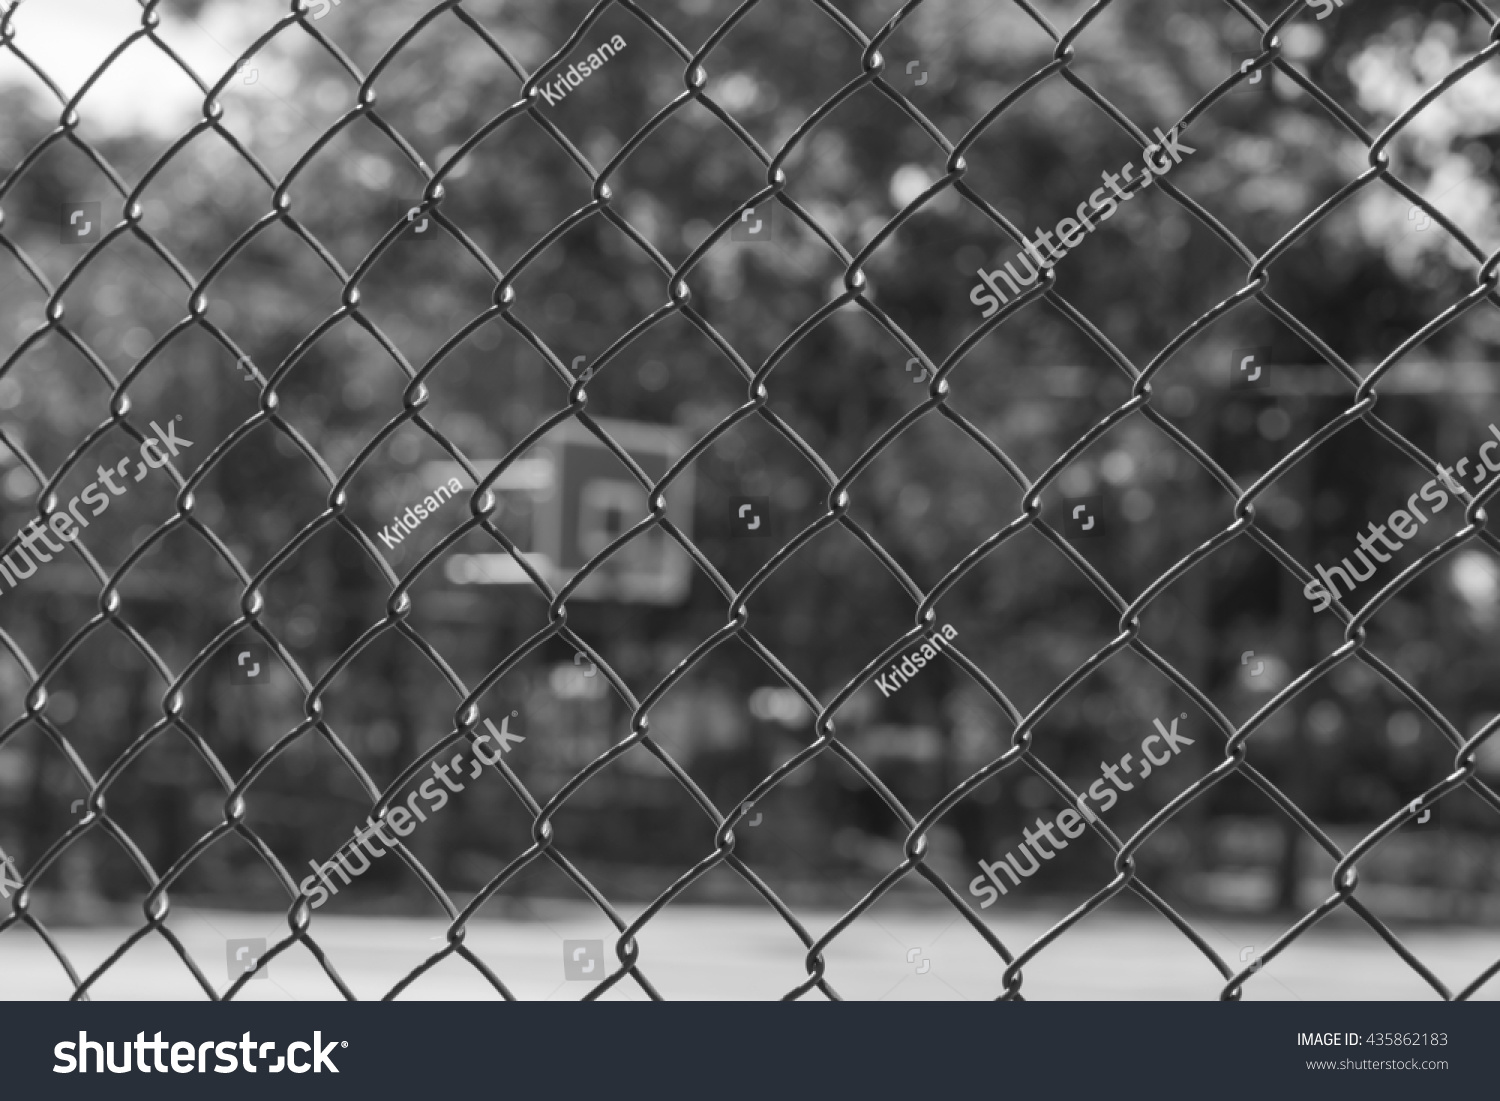 Royalty-free Steel wire mesh fence Basketball court… #435862183 ...